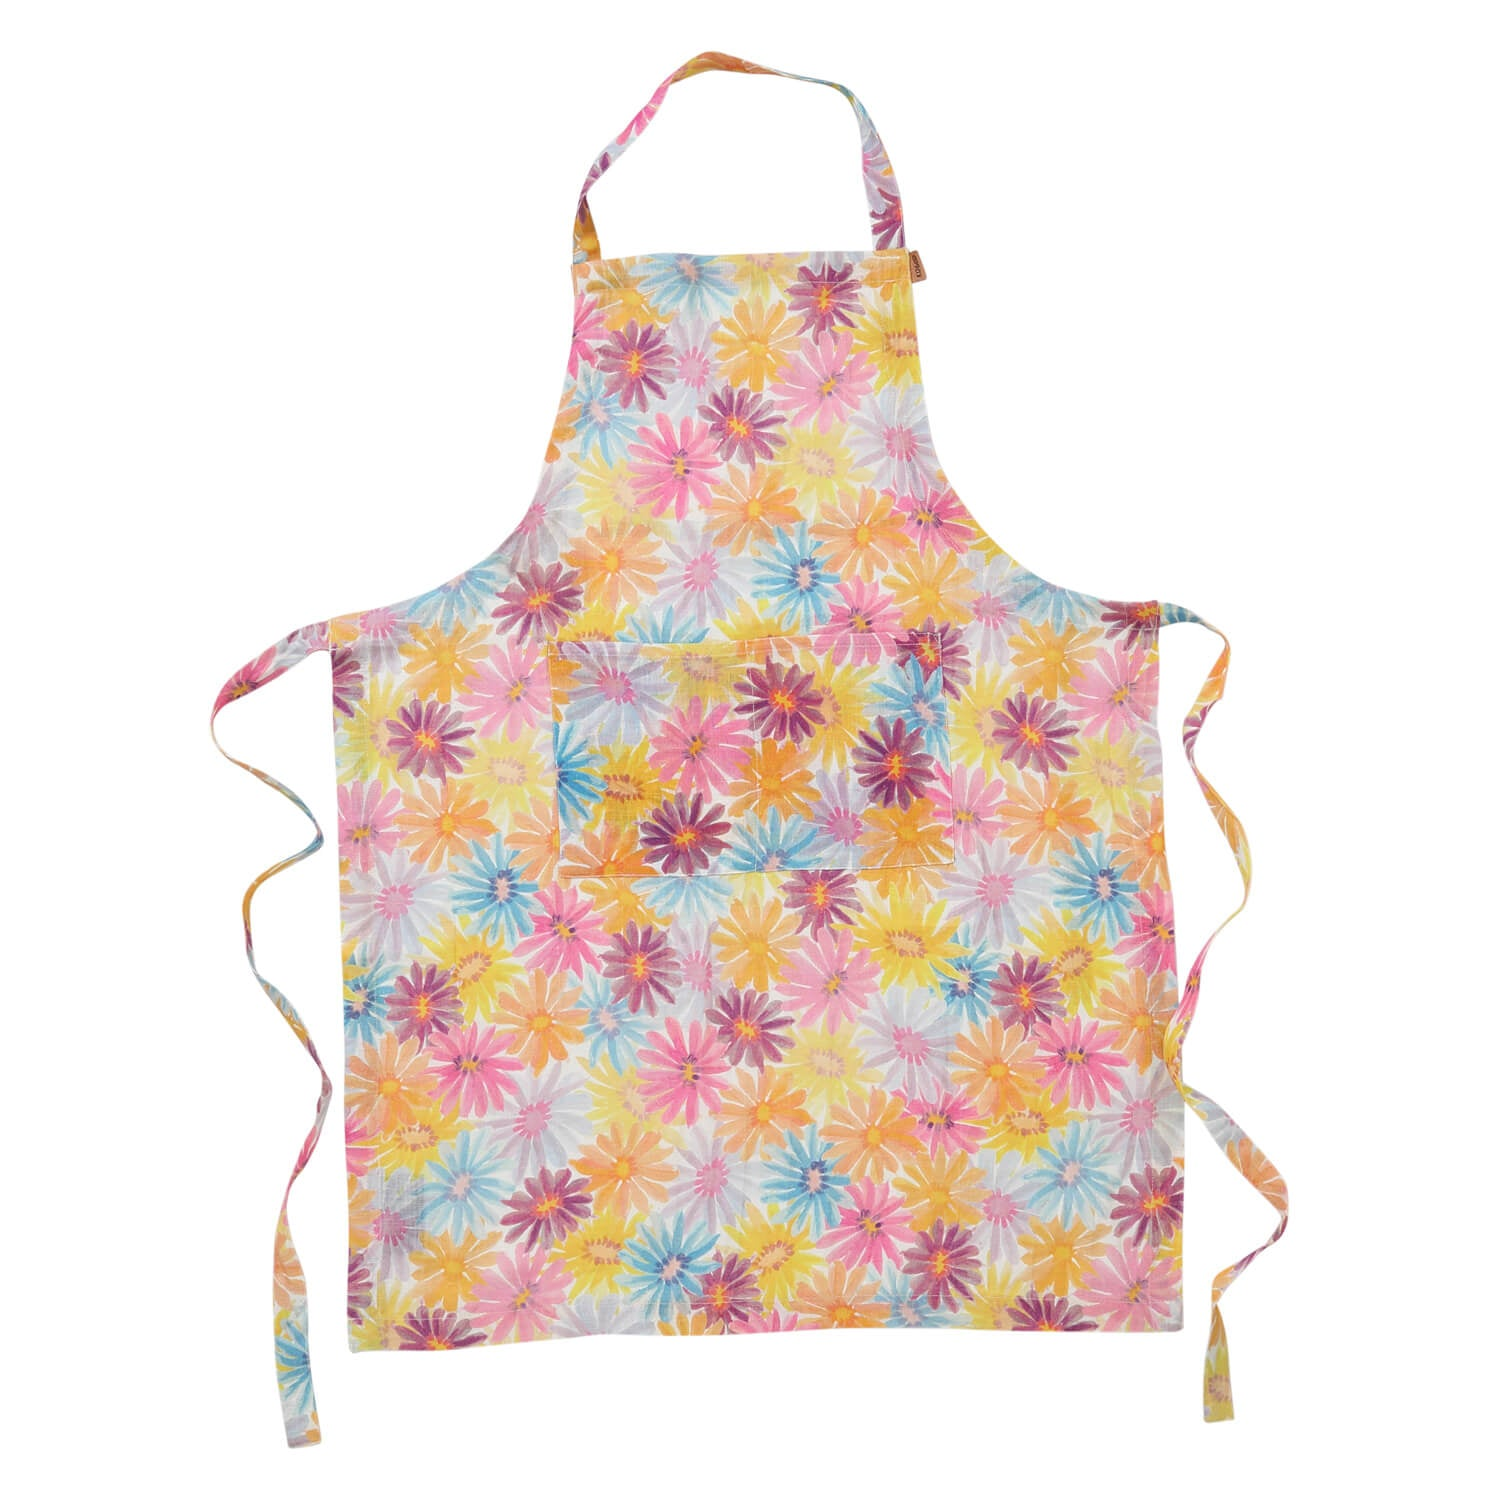 Kip and co French linen apron - petal power |The Home Maven